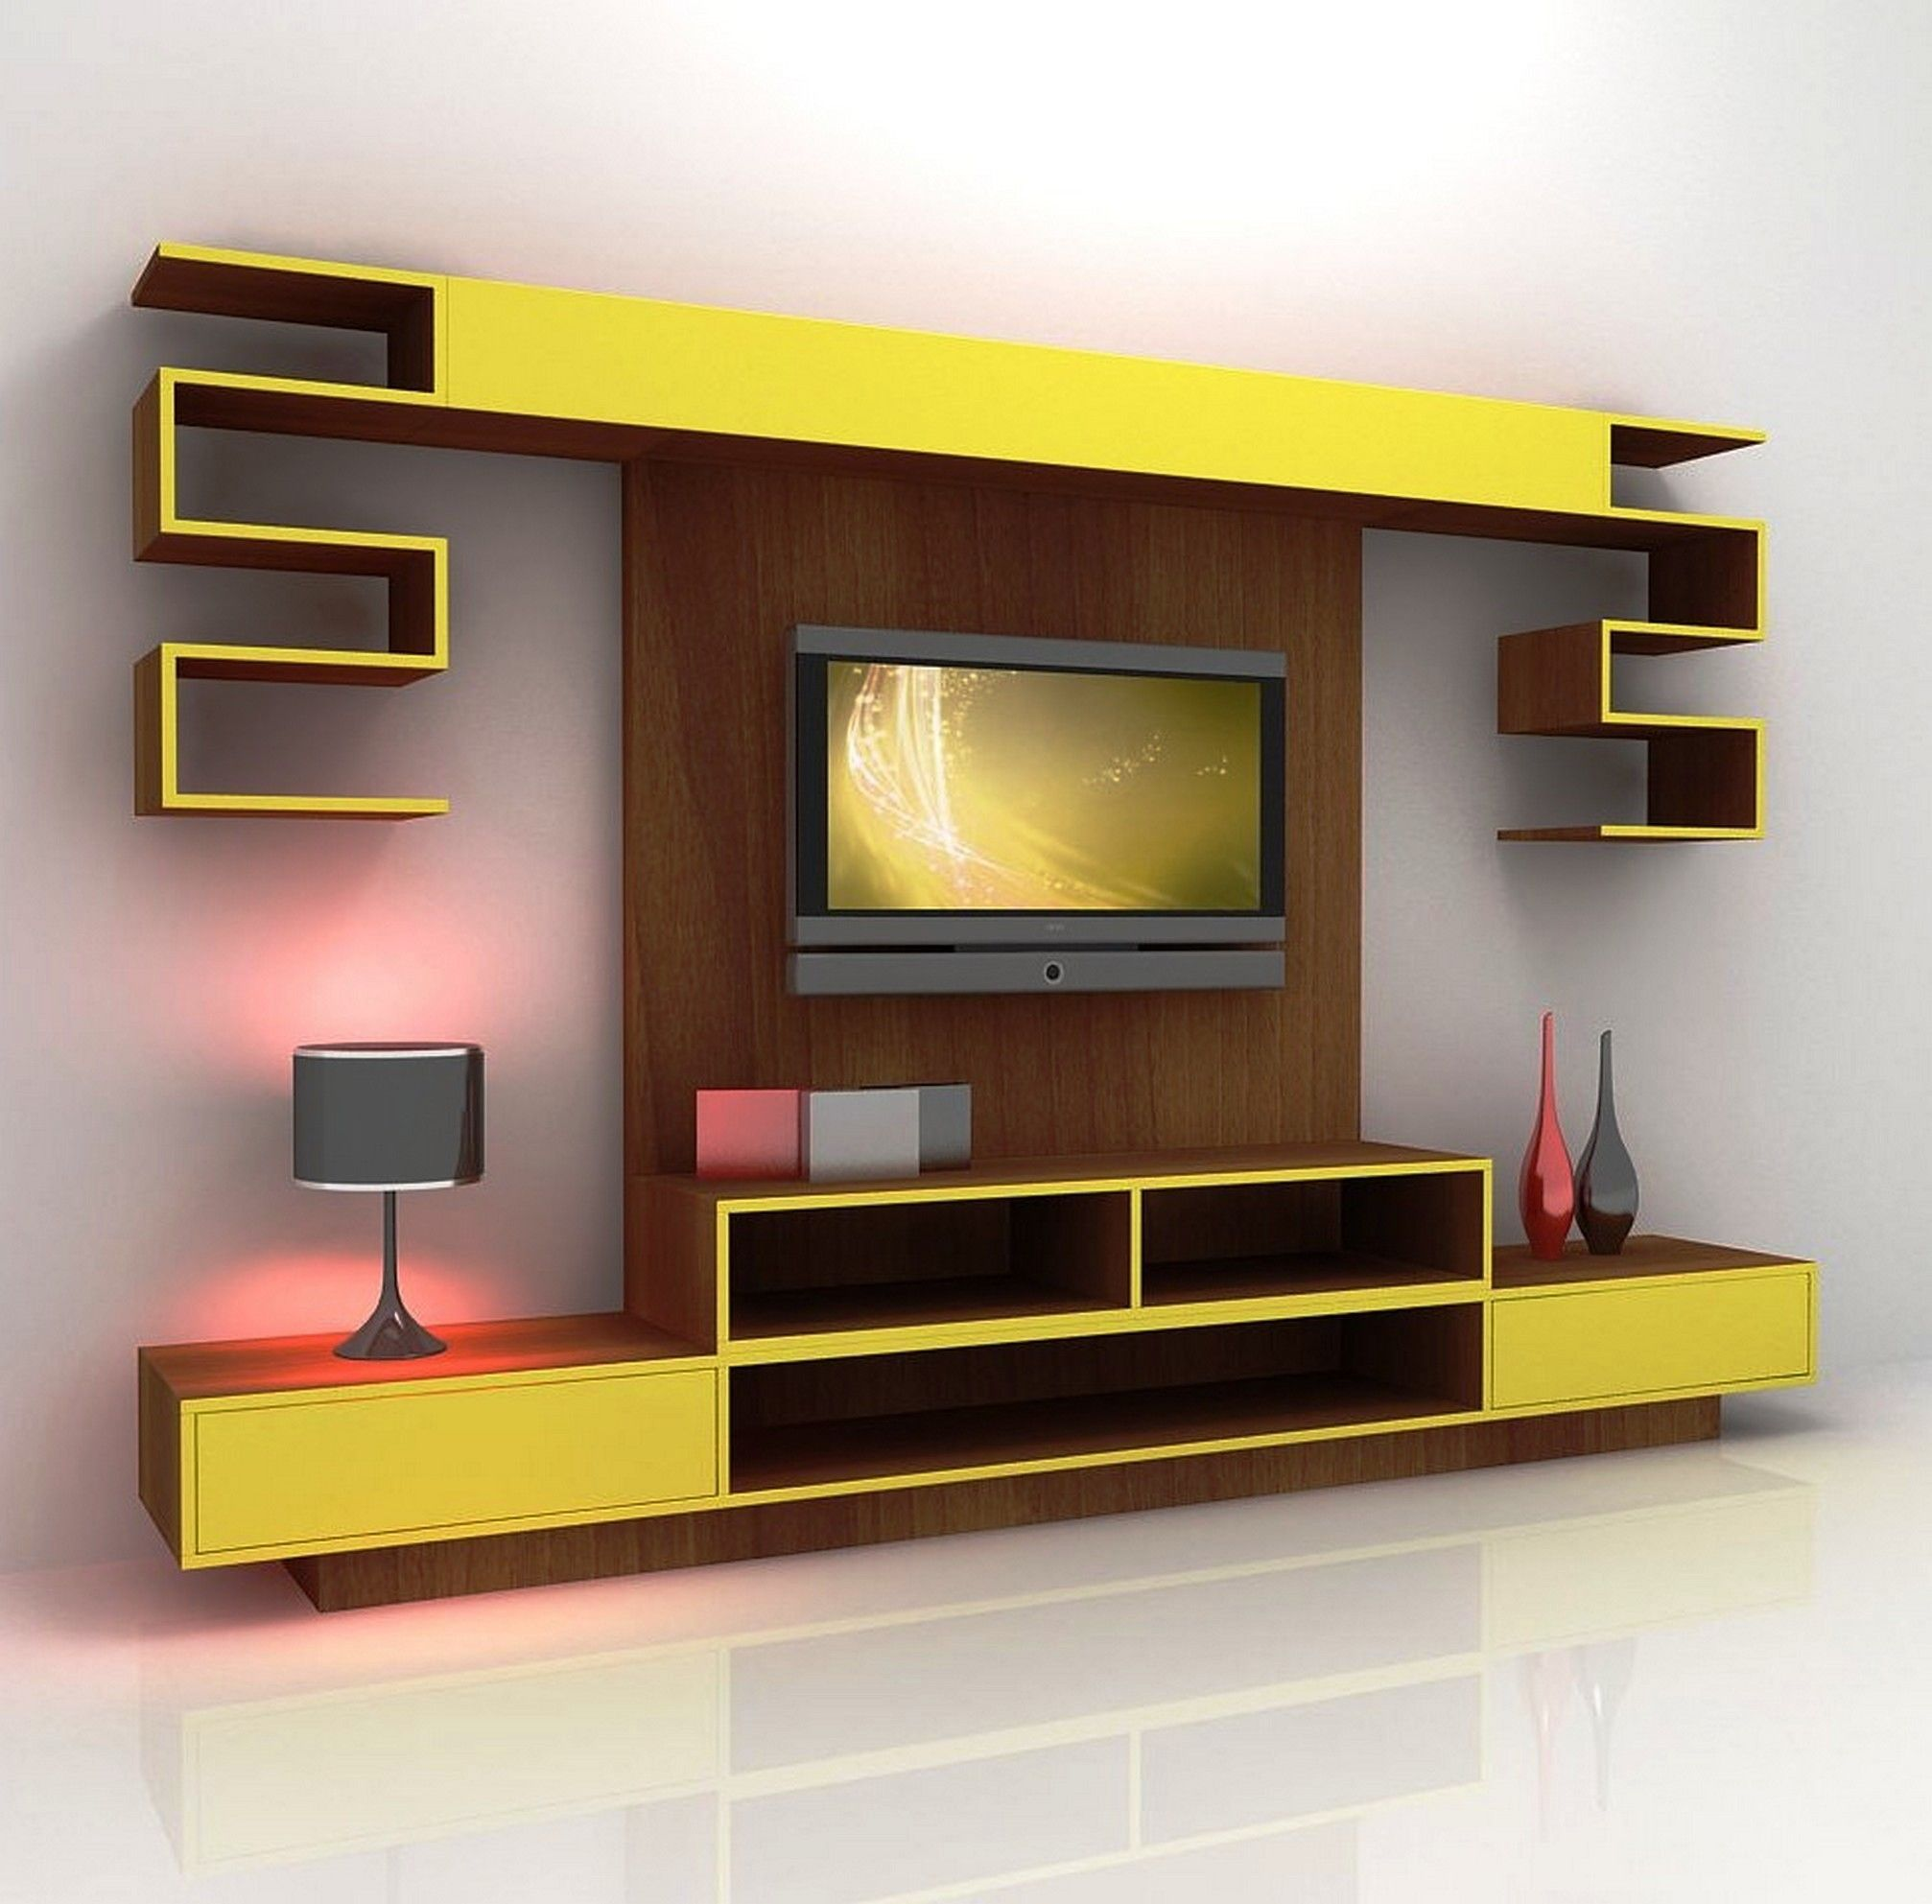 Tv On The Wall Ideas Mount Hide Wires Wooden With Floating